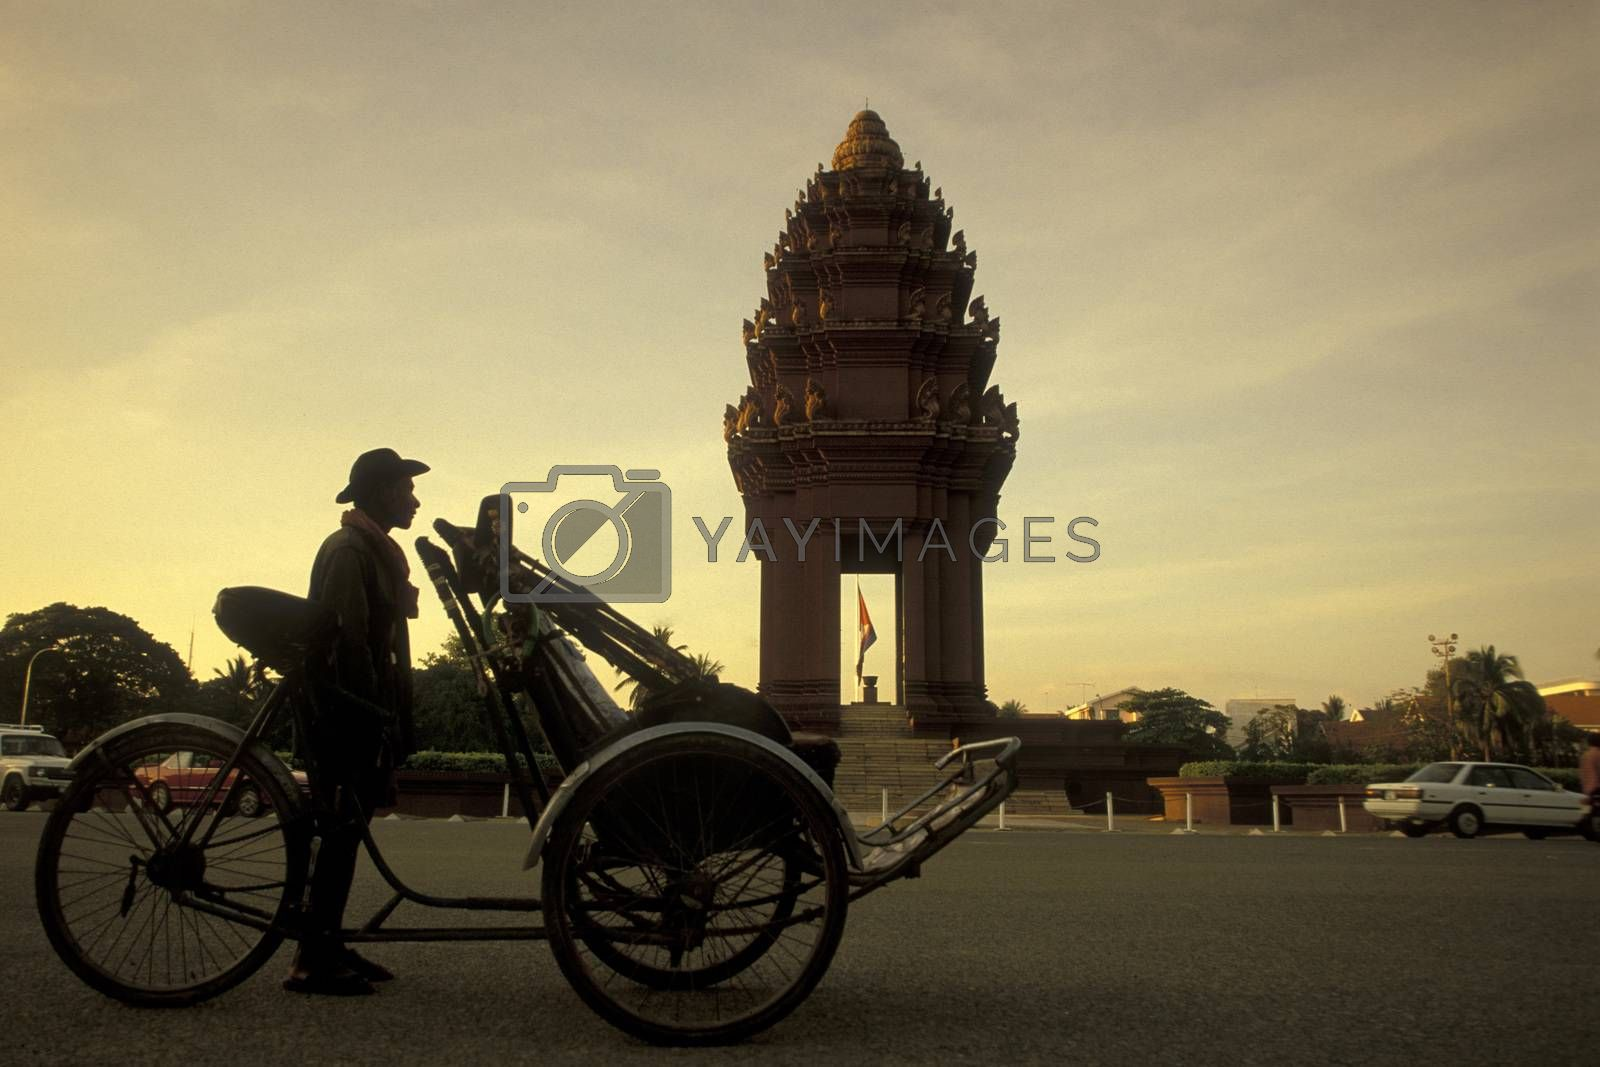 a traditional Bicycle Riksha Taxi in front of the Independence Monument at the Sihanouk Bouelvard in the city of Phnom Penh of Cambodia.  Cambodia, Phnom Penh, February, 2001